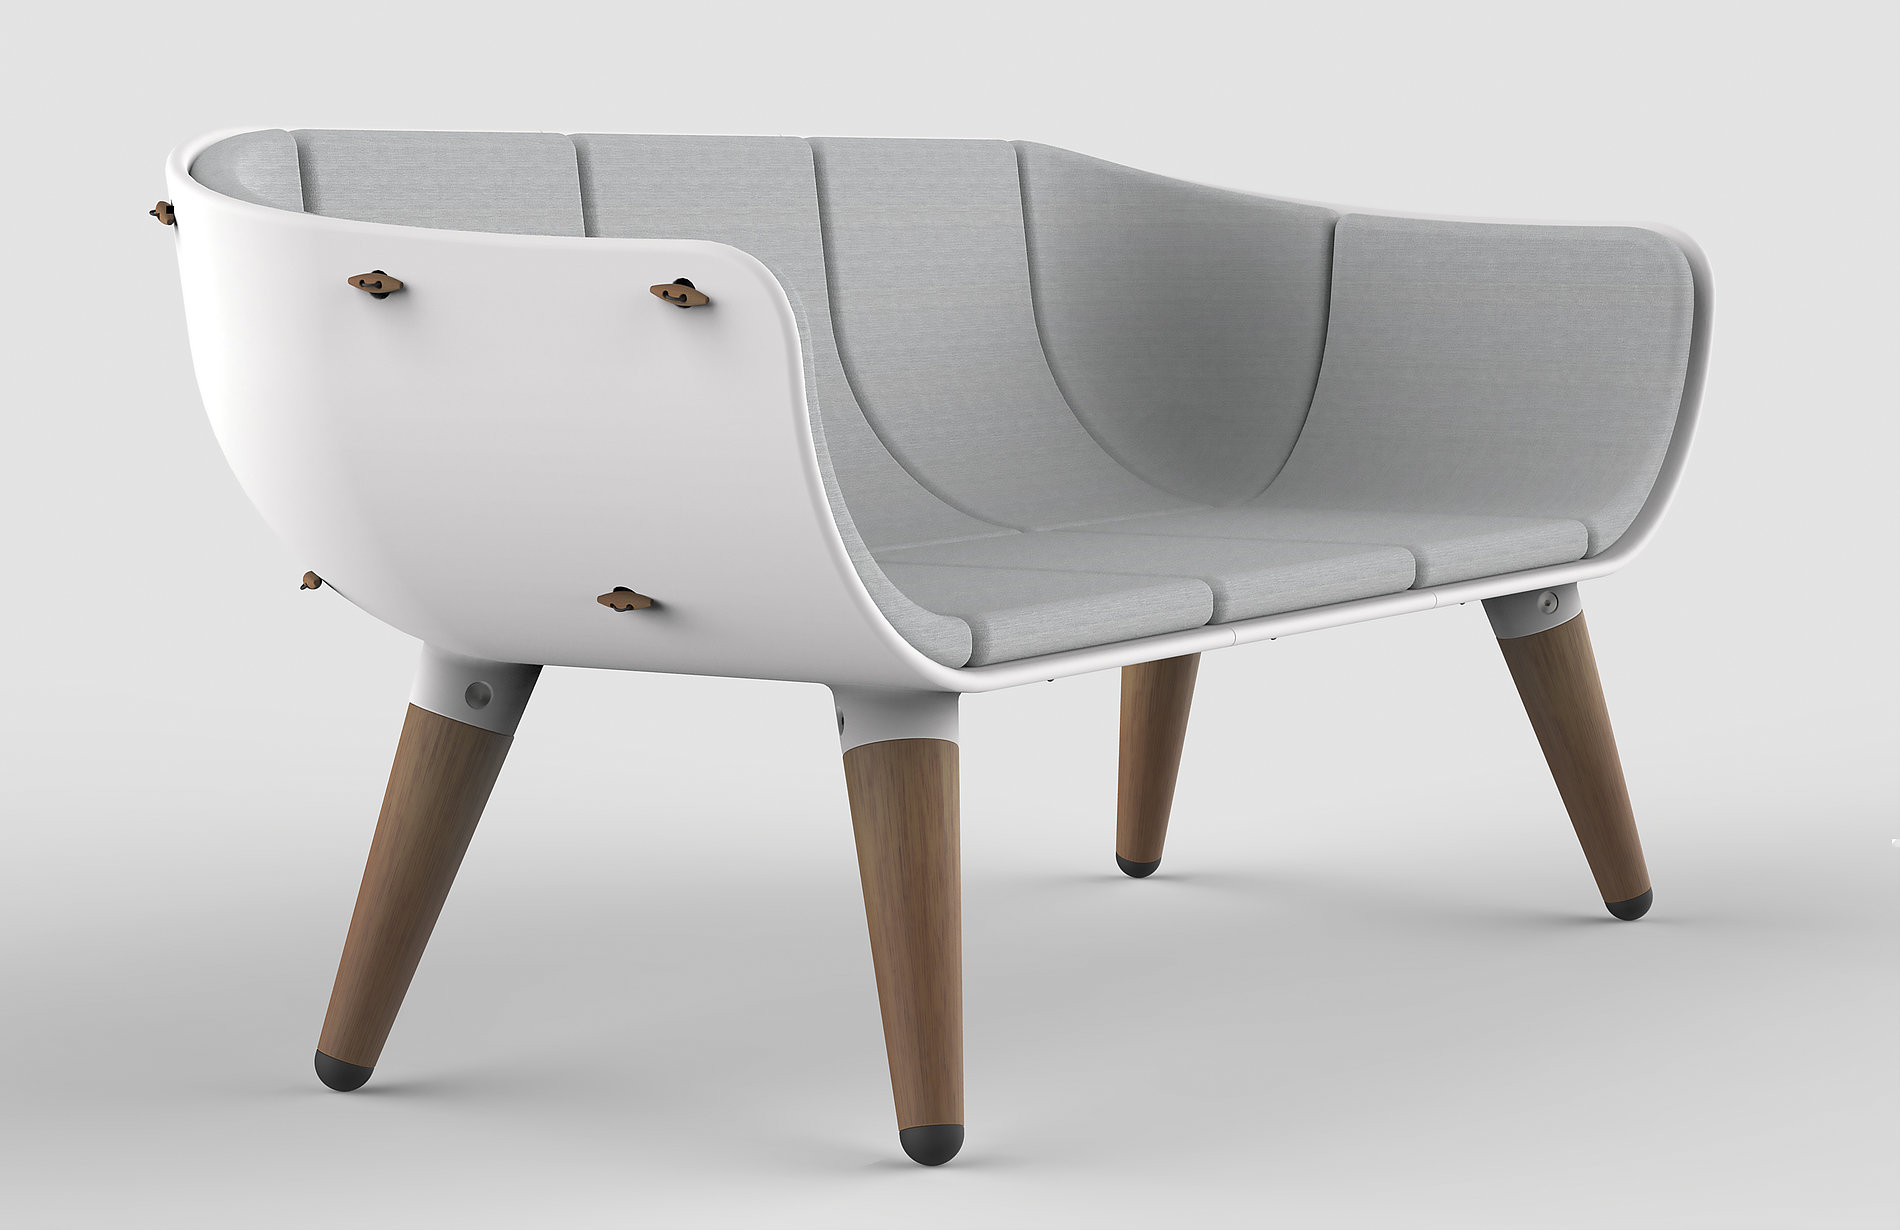 Biome Couch | Red Dot Design Award